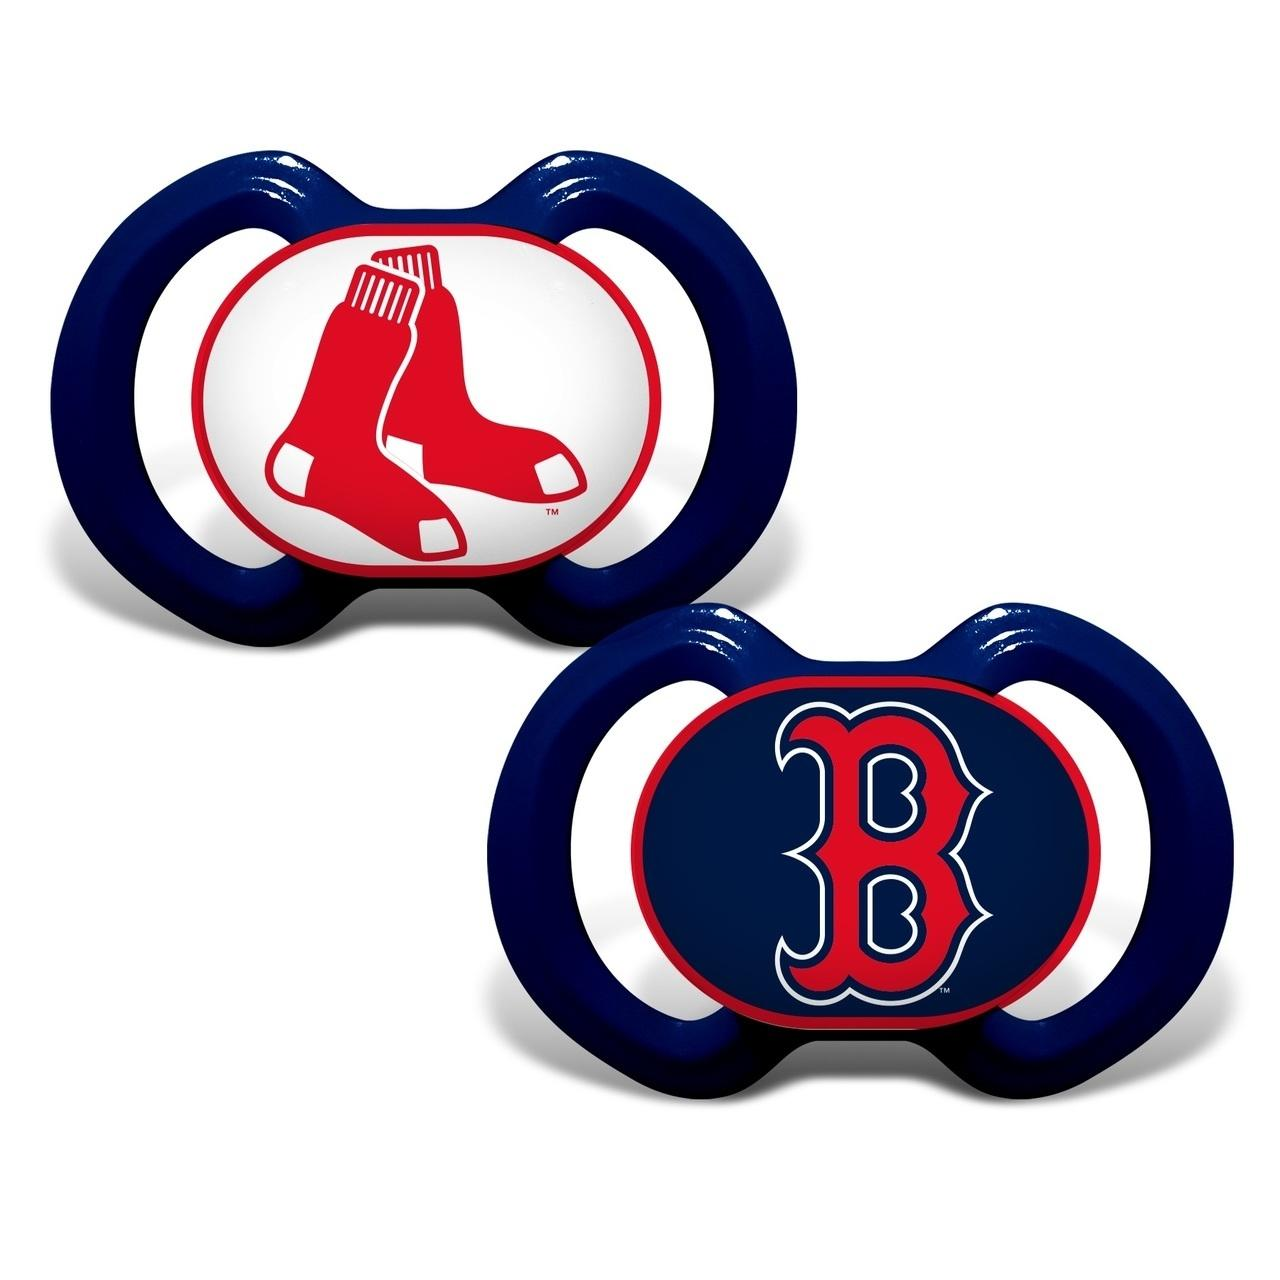 Mlb Baseball Boston Red Sox Baby Fan Gear - 1740702249 - Boston Red Sox Pacifier 2 Pack 1740702249